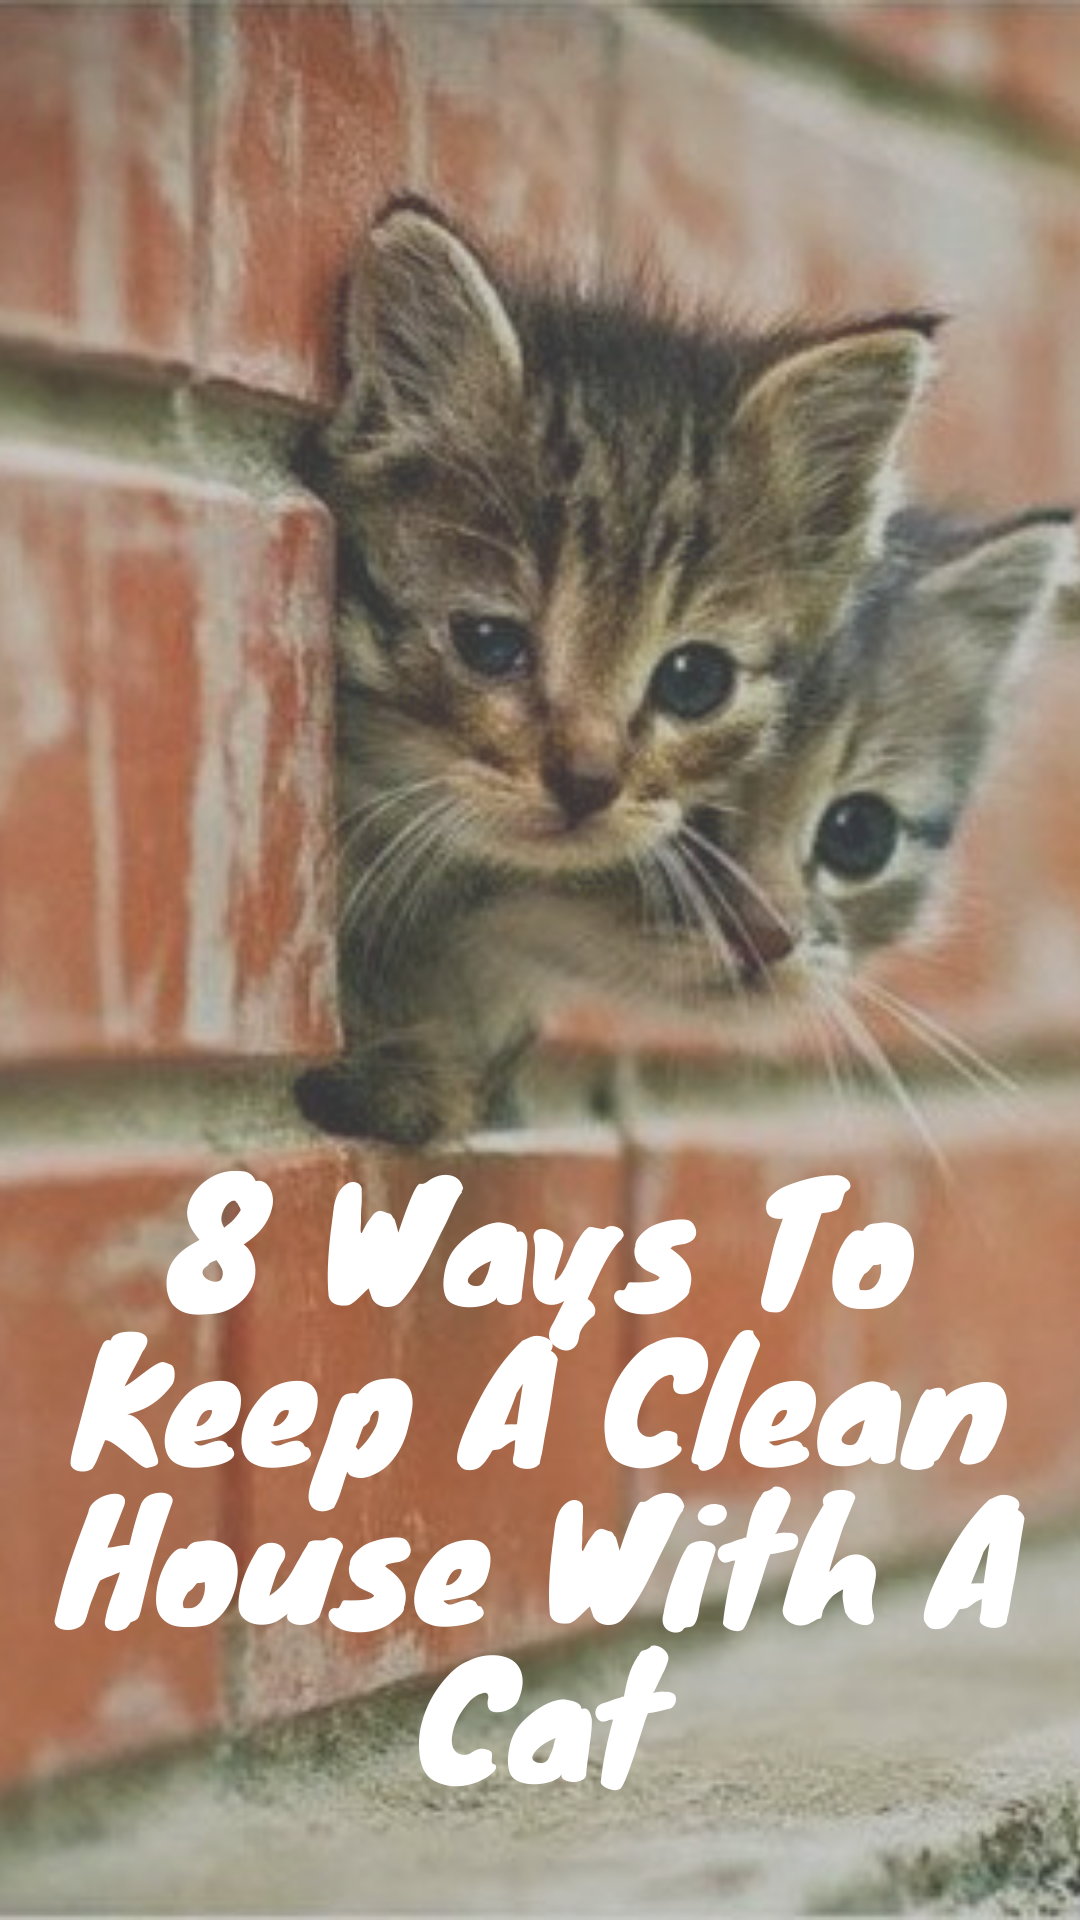 Tips To Keeping The House Clean For Cat Owners Cat Kittens Cats Kitten Meow Pet Hacks Cat Parenting Cat Hacks Cats